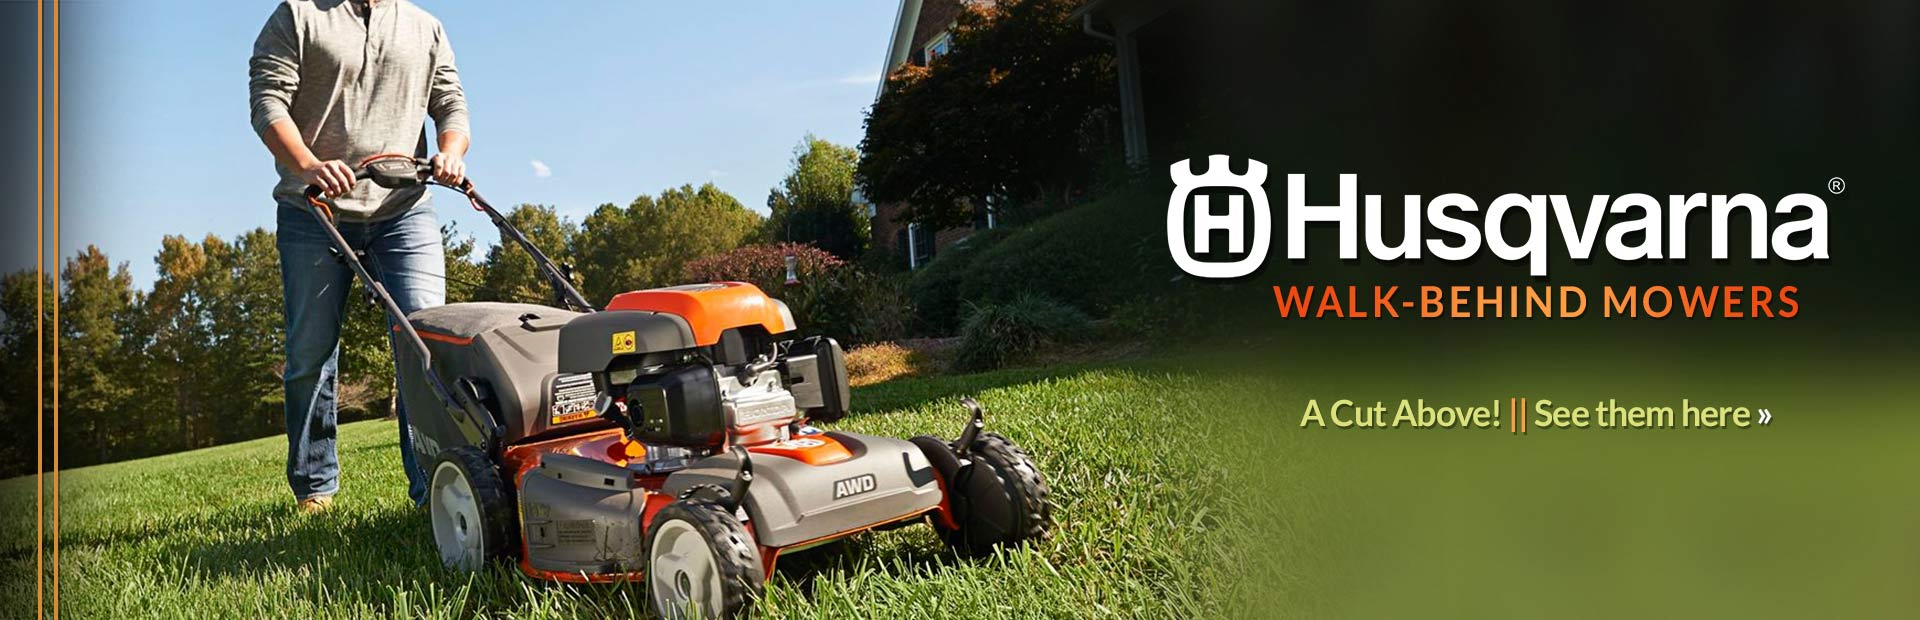 Husqvarna Walk-Behind Mowers: Click here to view the models.